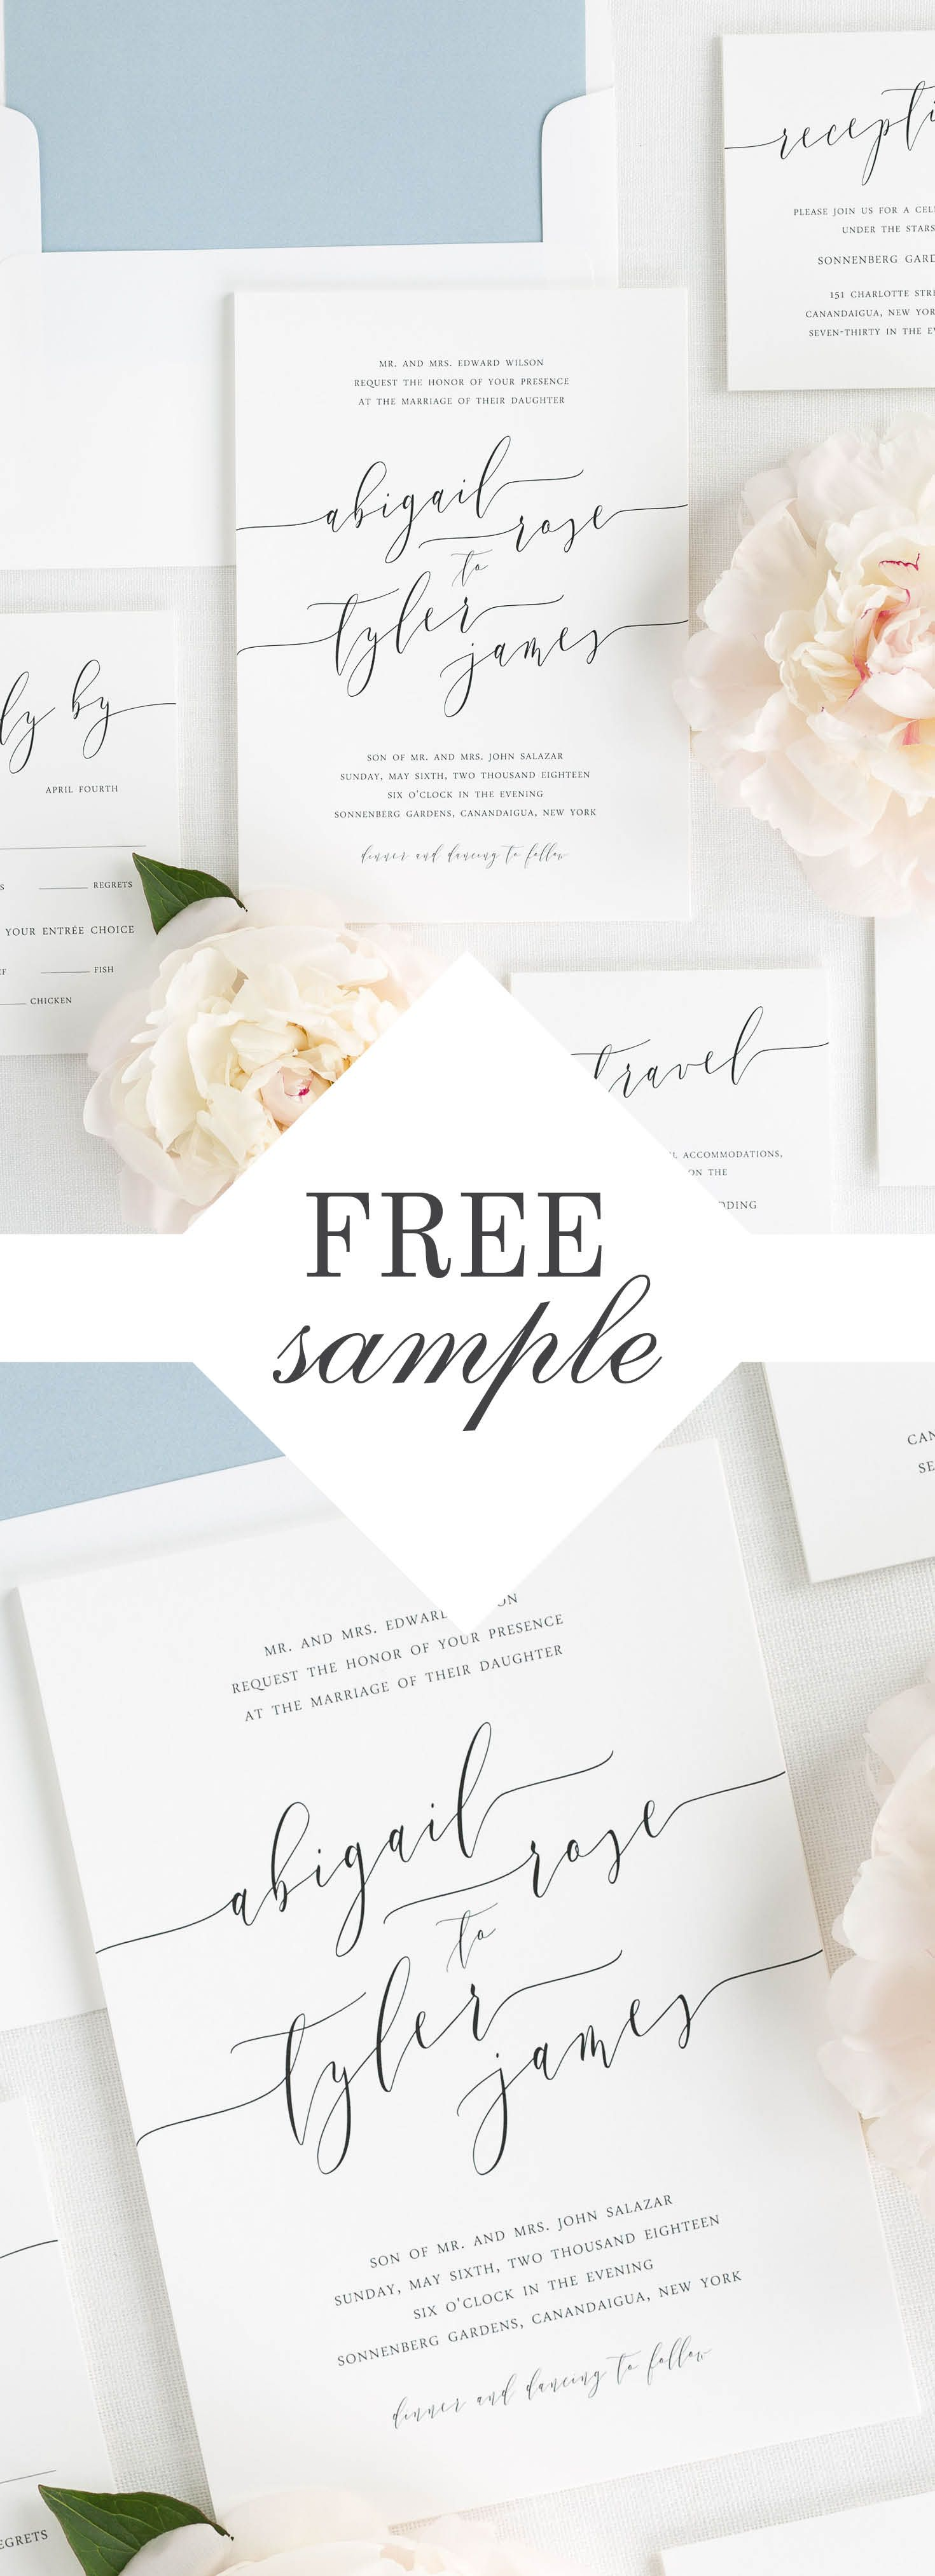 Customize in Over 40 Colors, Liners & Choice of Paper | Free ...